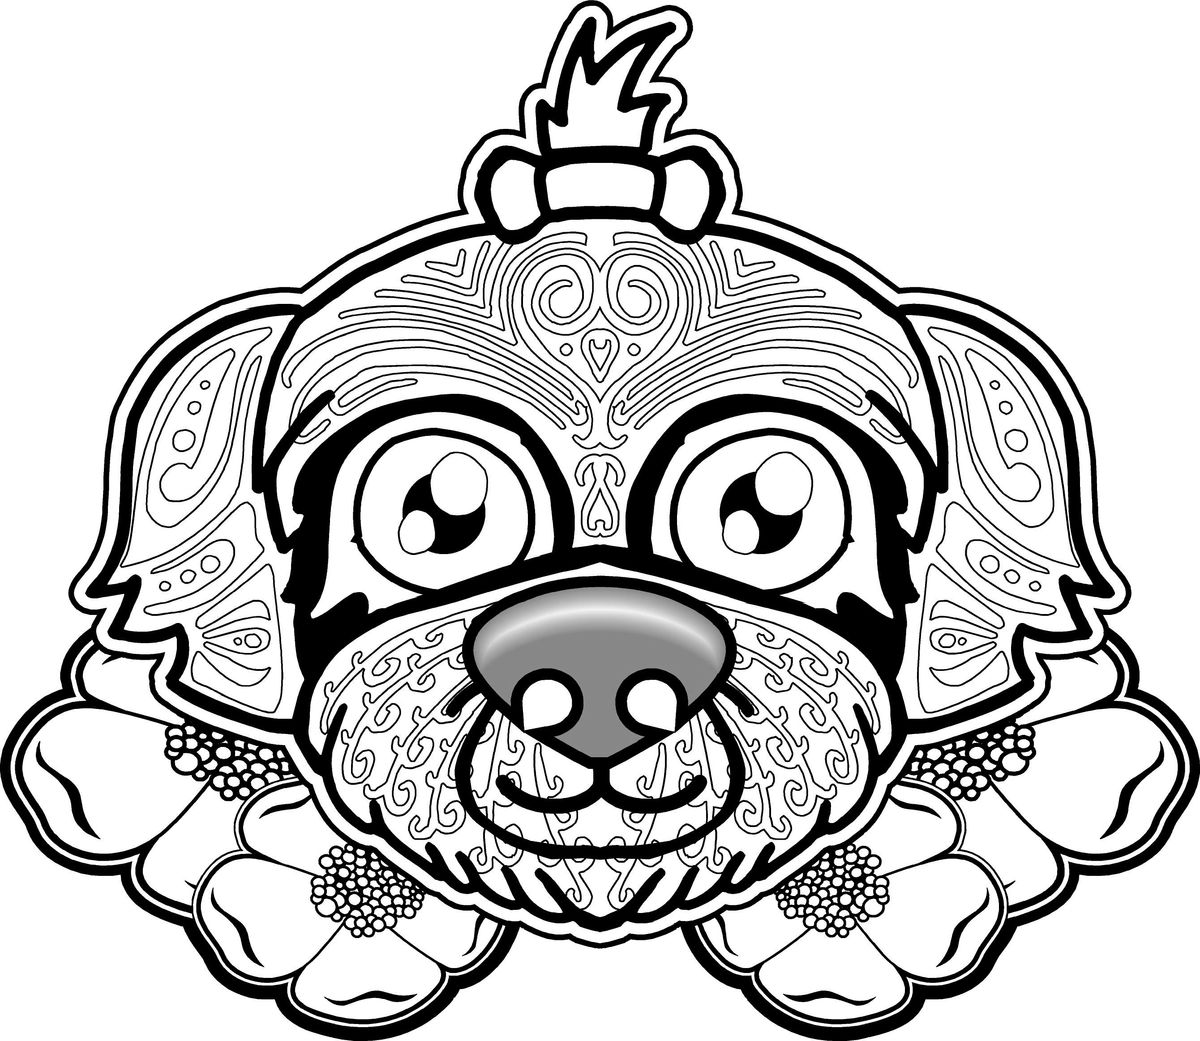 dog sugar skull coloring pages | 1000+ images about Colouring - CATS & DOGS on Pinterest